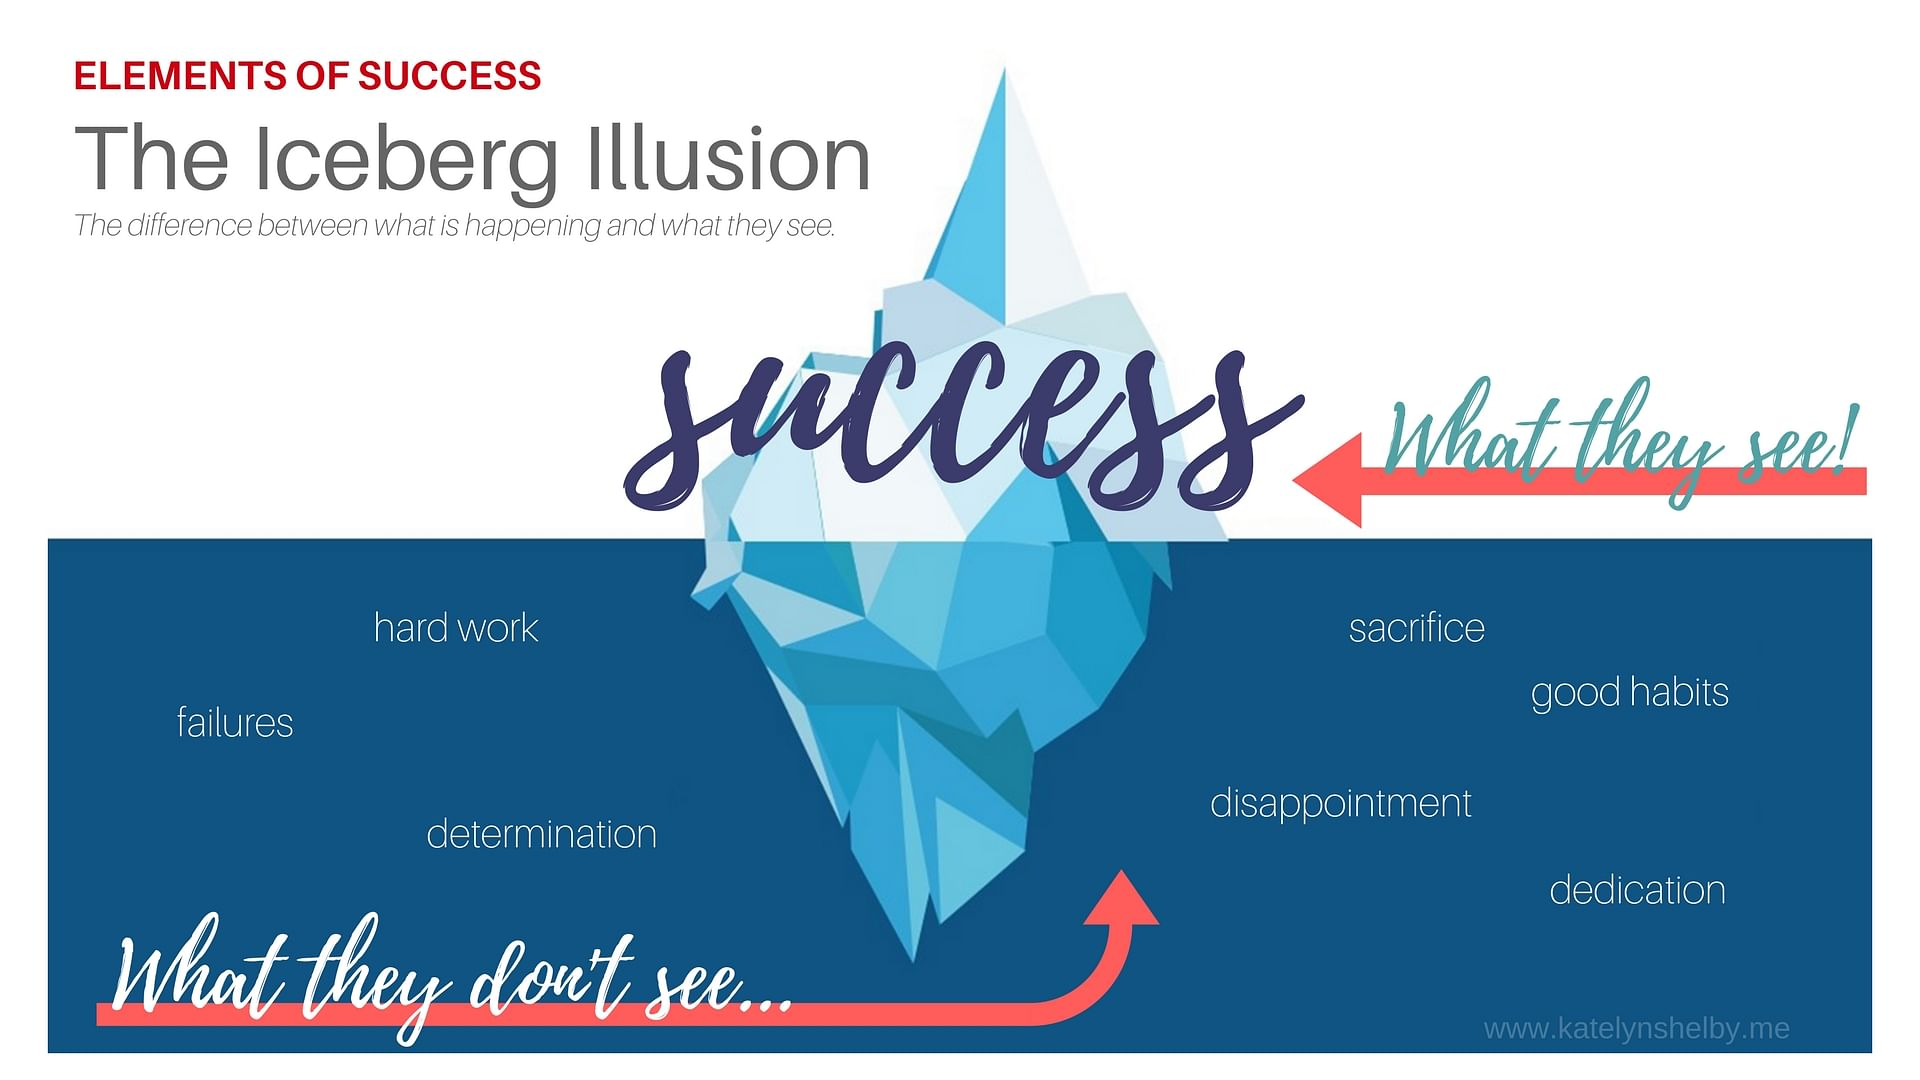 The Iceberg Illusion of Success - The difference between what is happening and what they see.